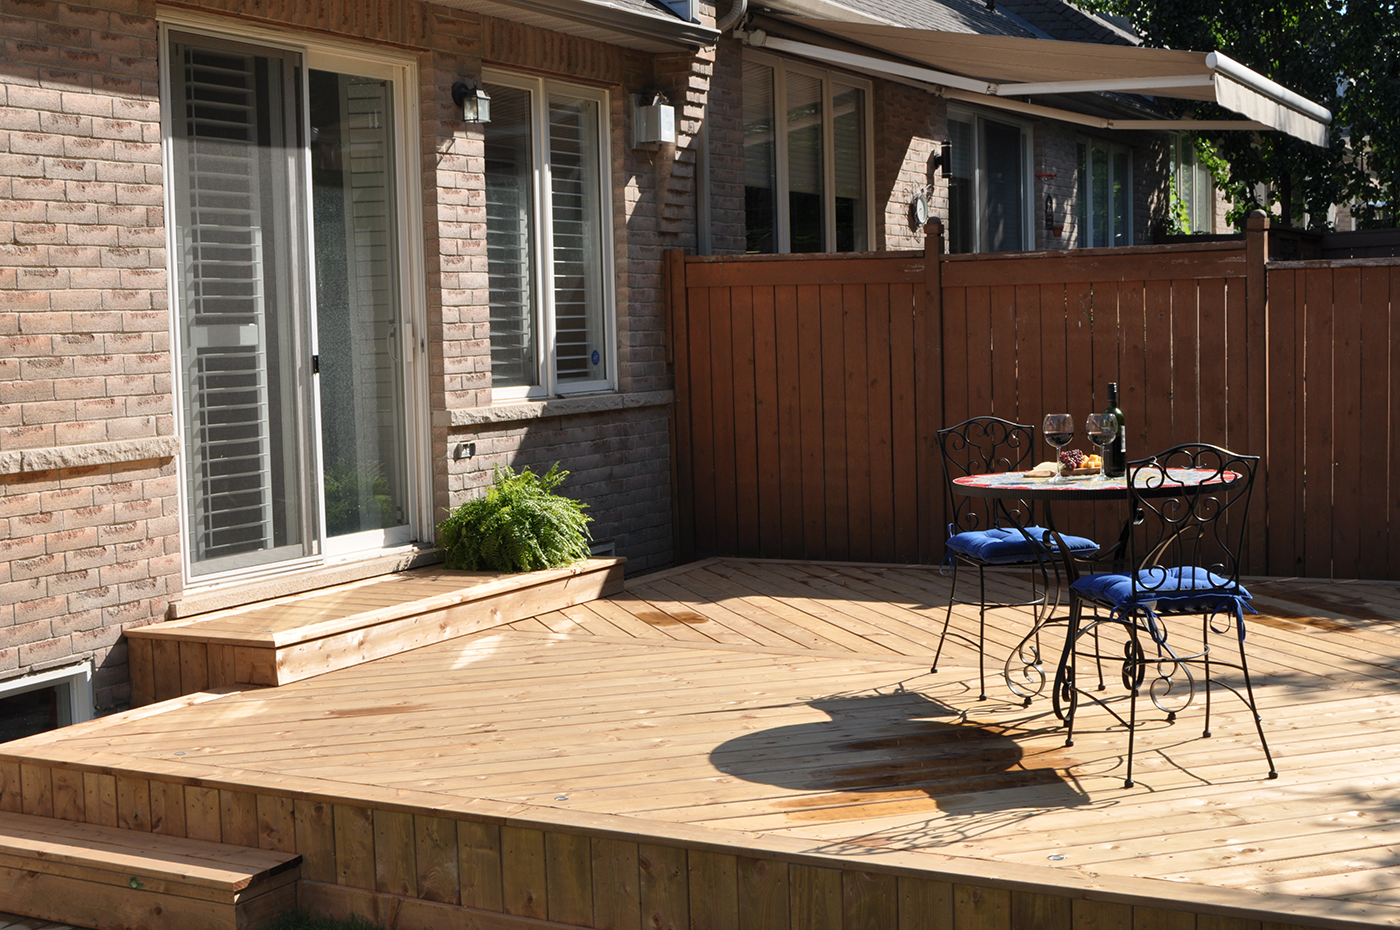 Wood deck with table and chairs.